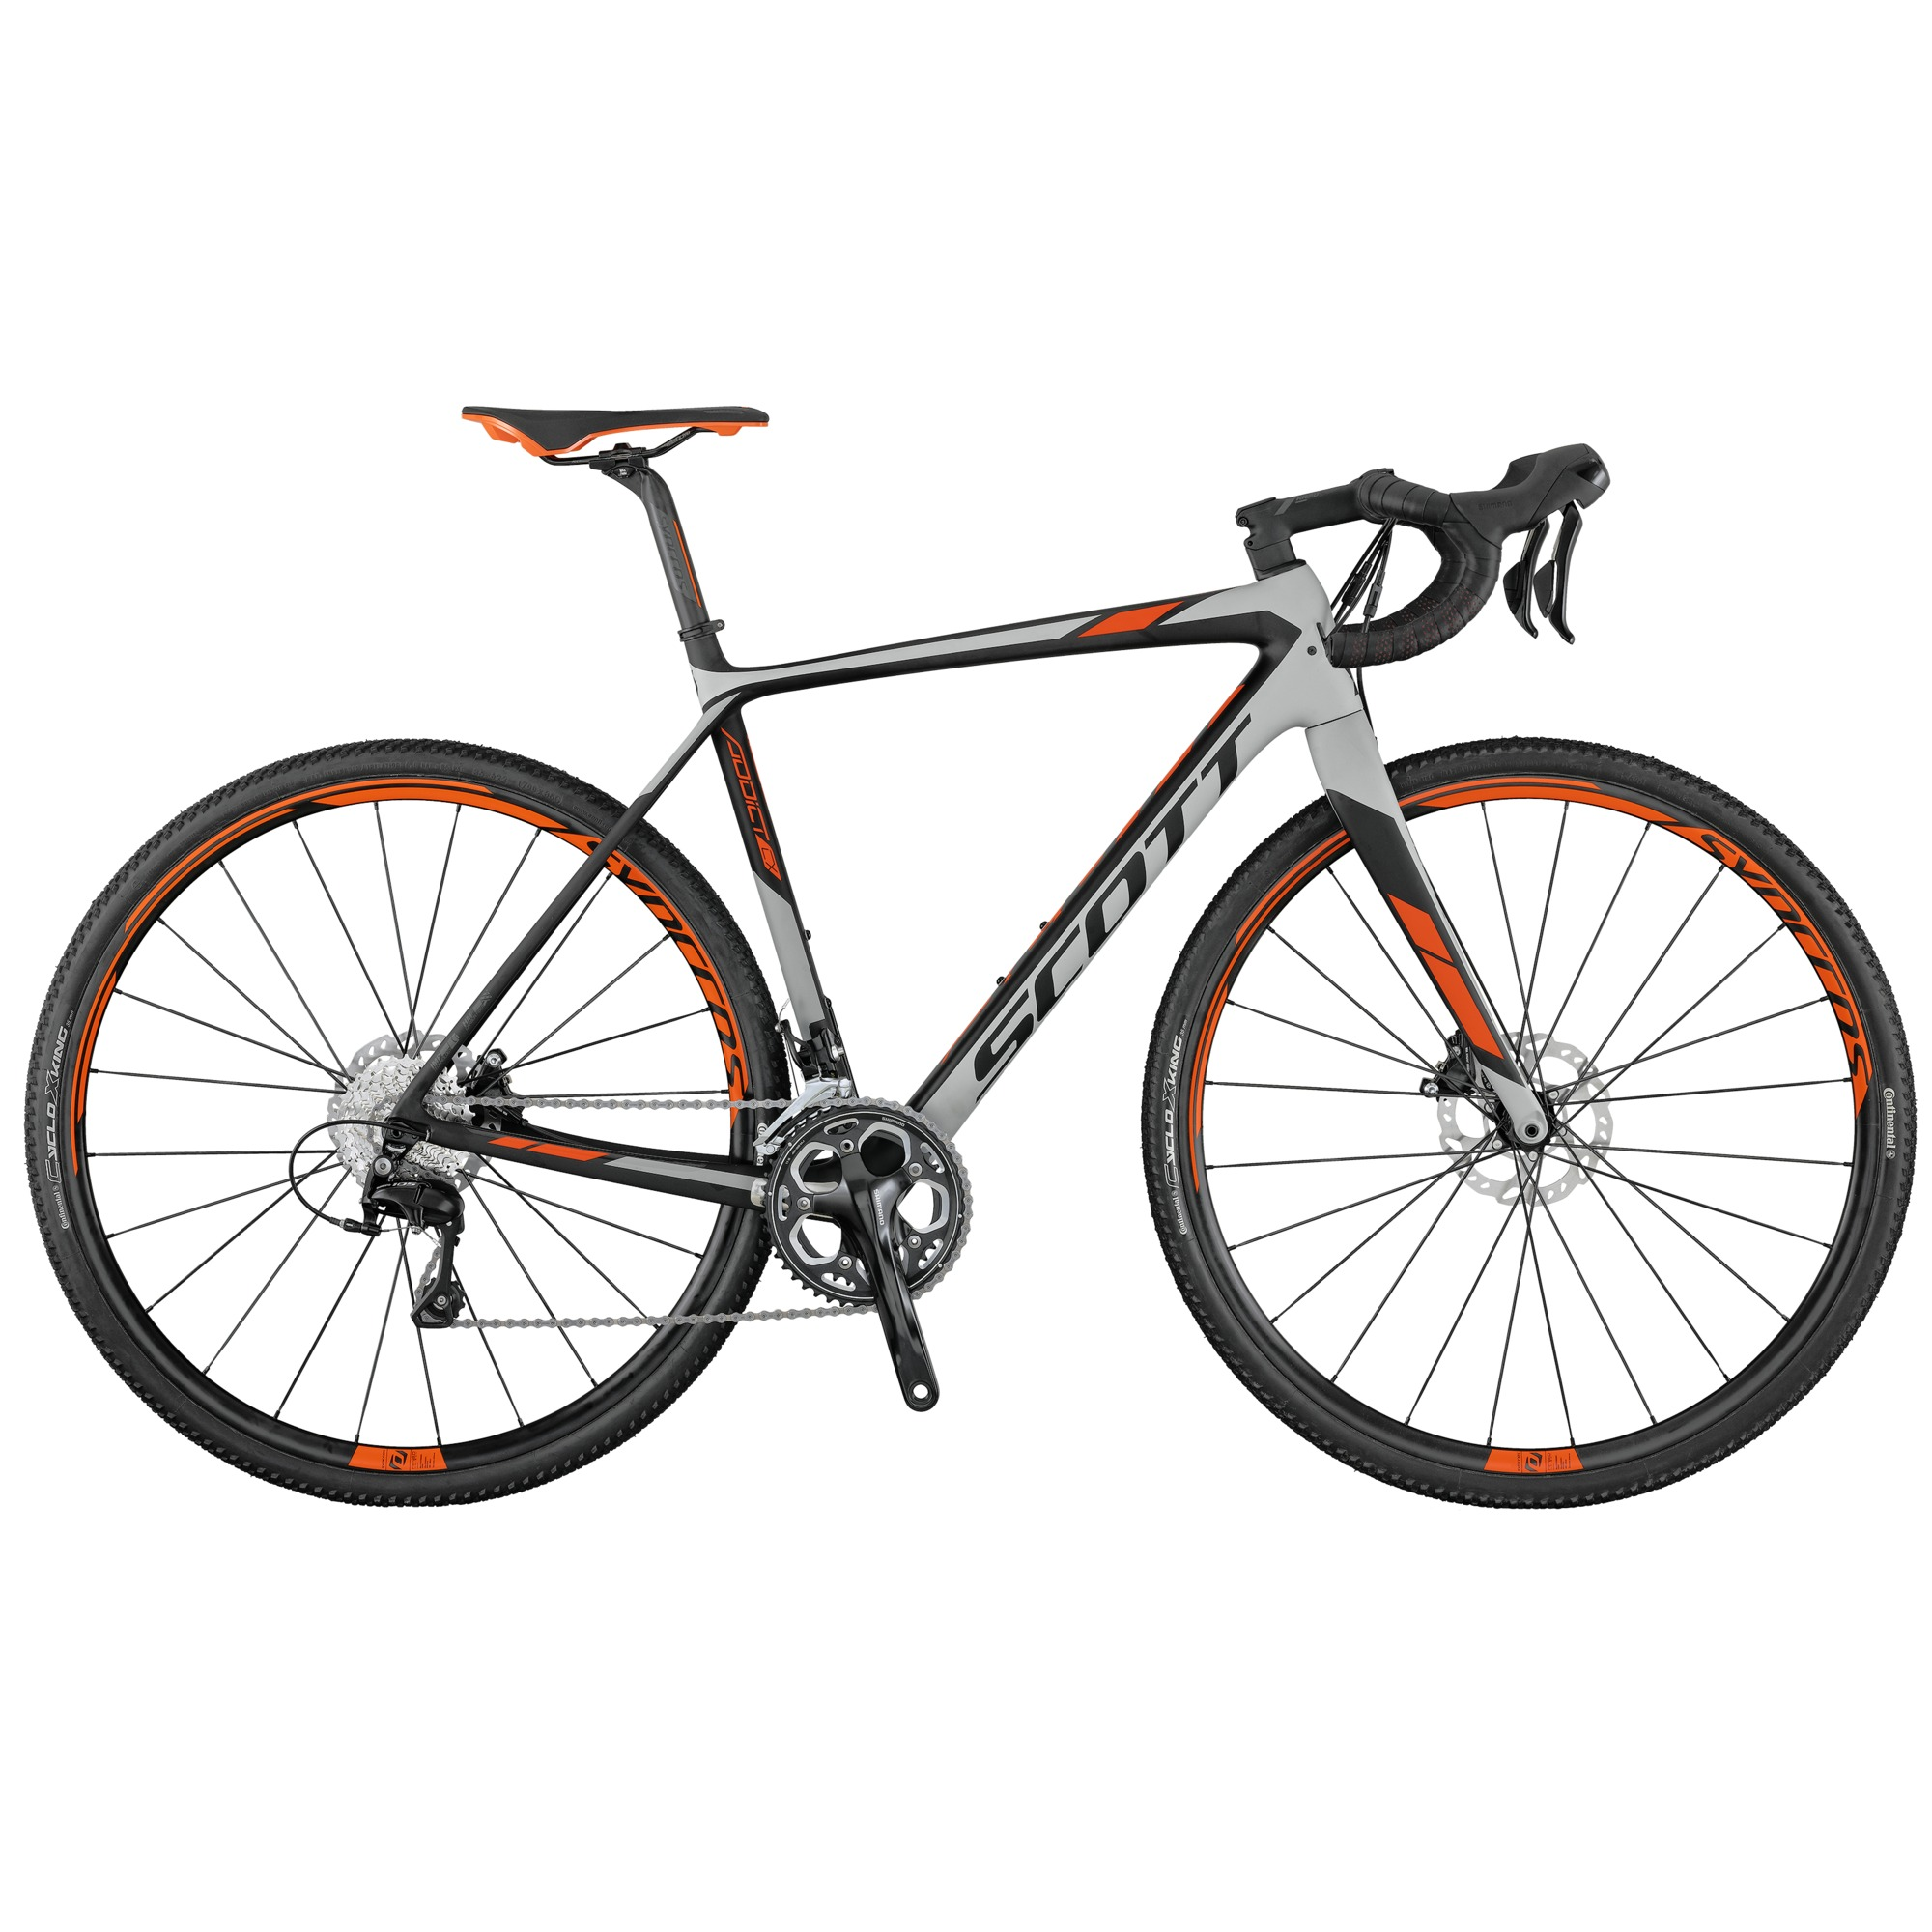 SCOTT Addict CX 20 Disc Bike